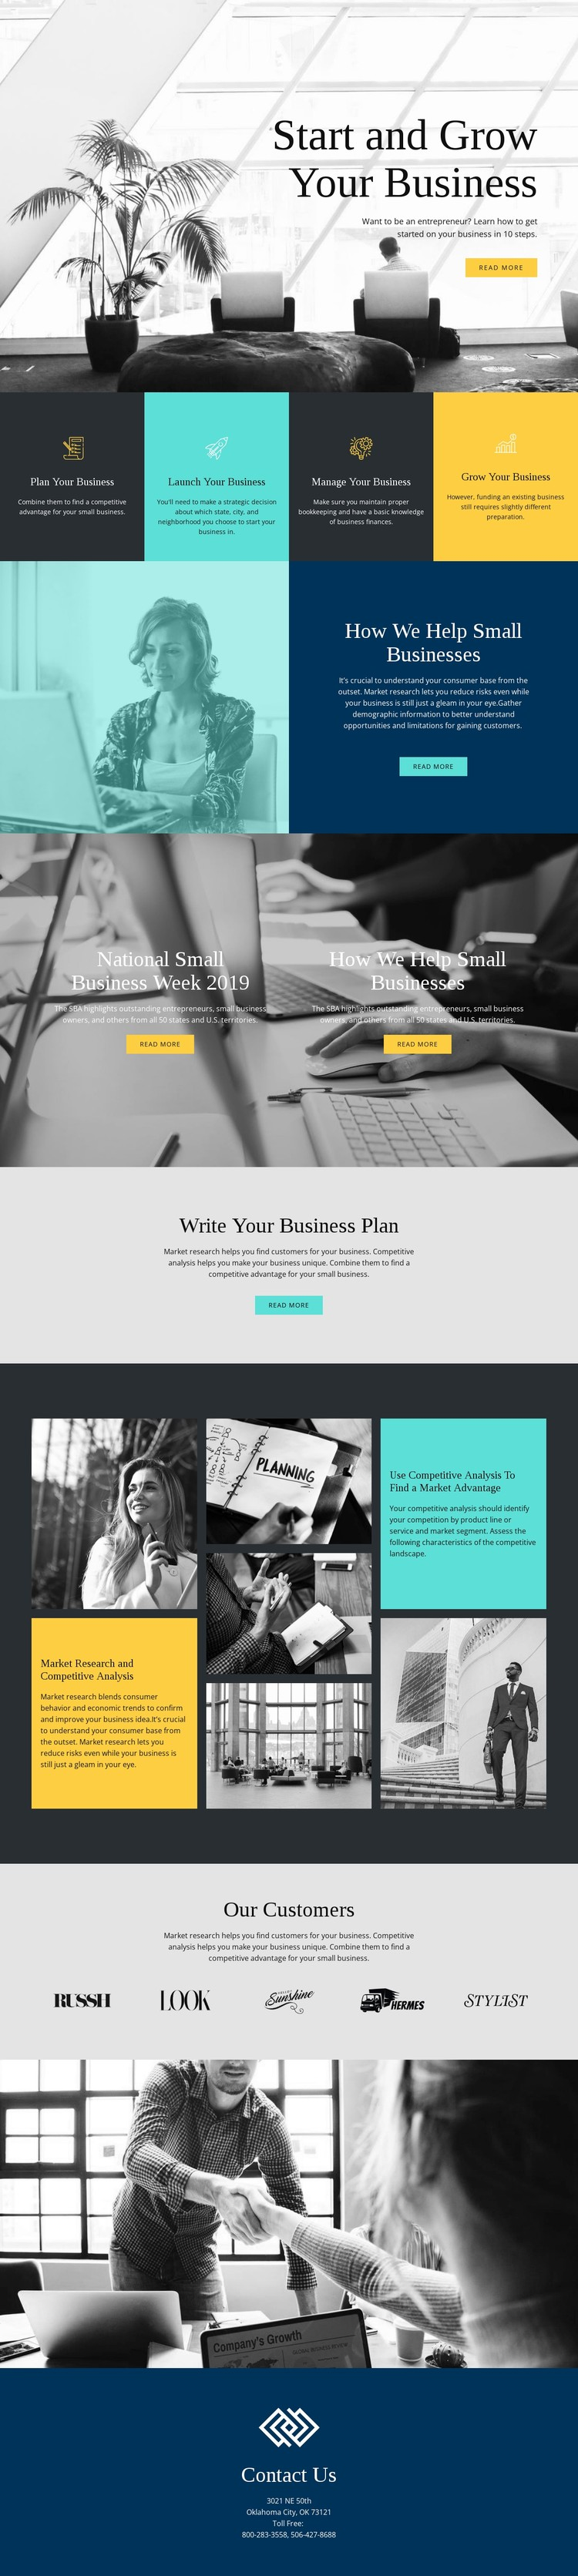 Start and grow your business WordPress Template